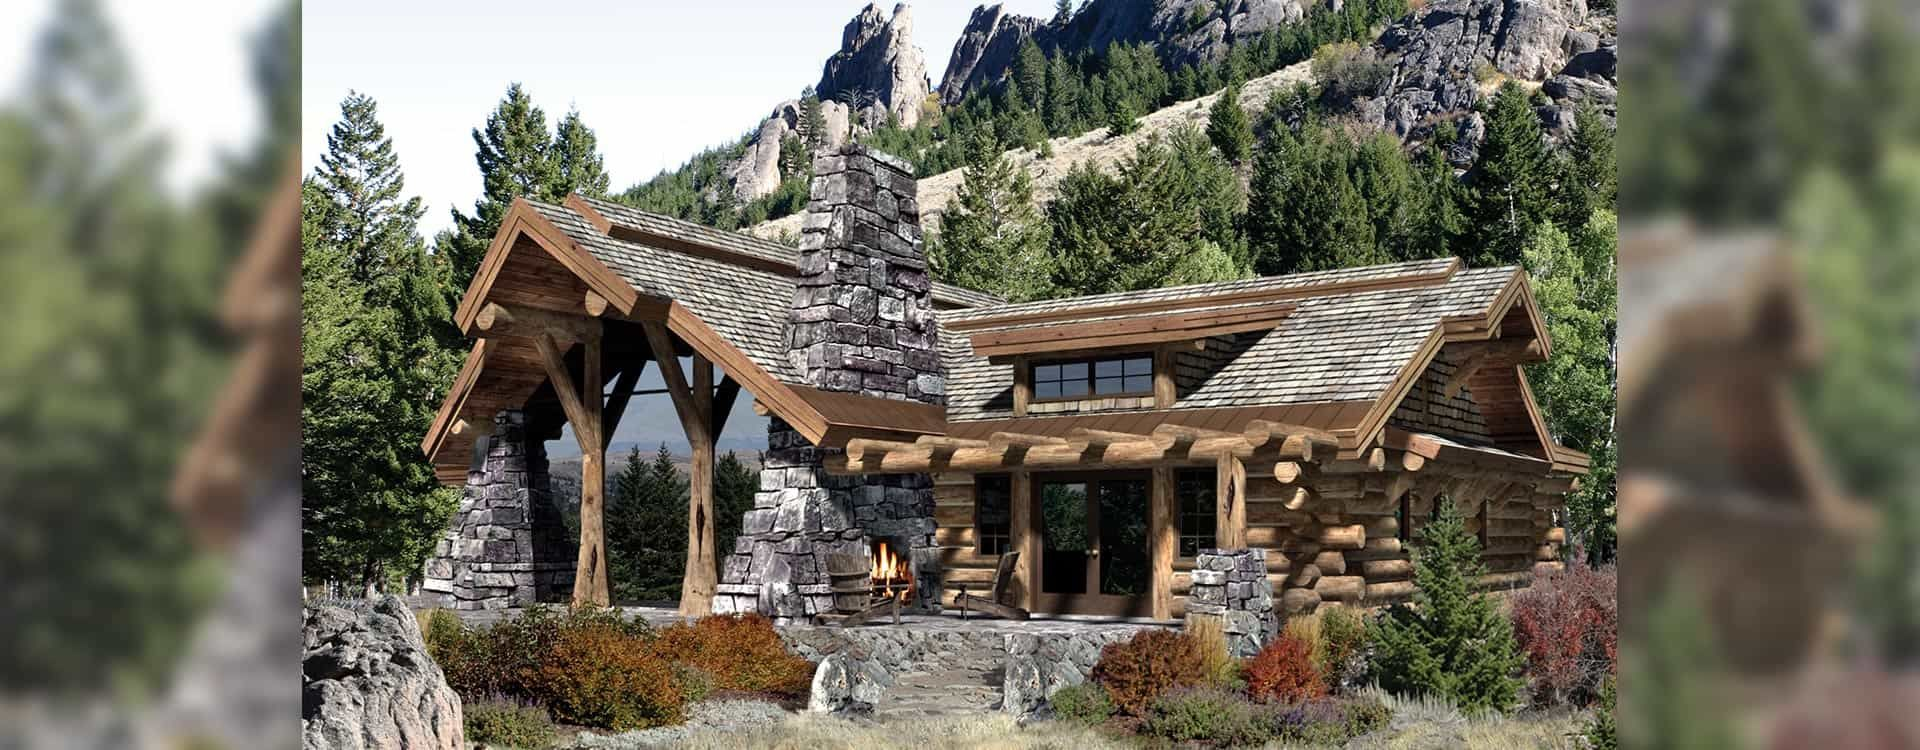 Caribou handcrafted log home Rendering | casas | Pinterest ...